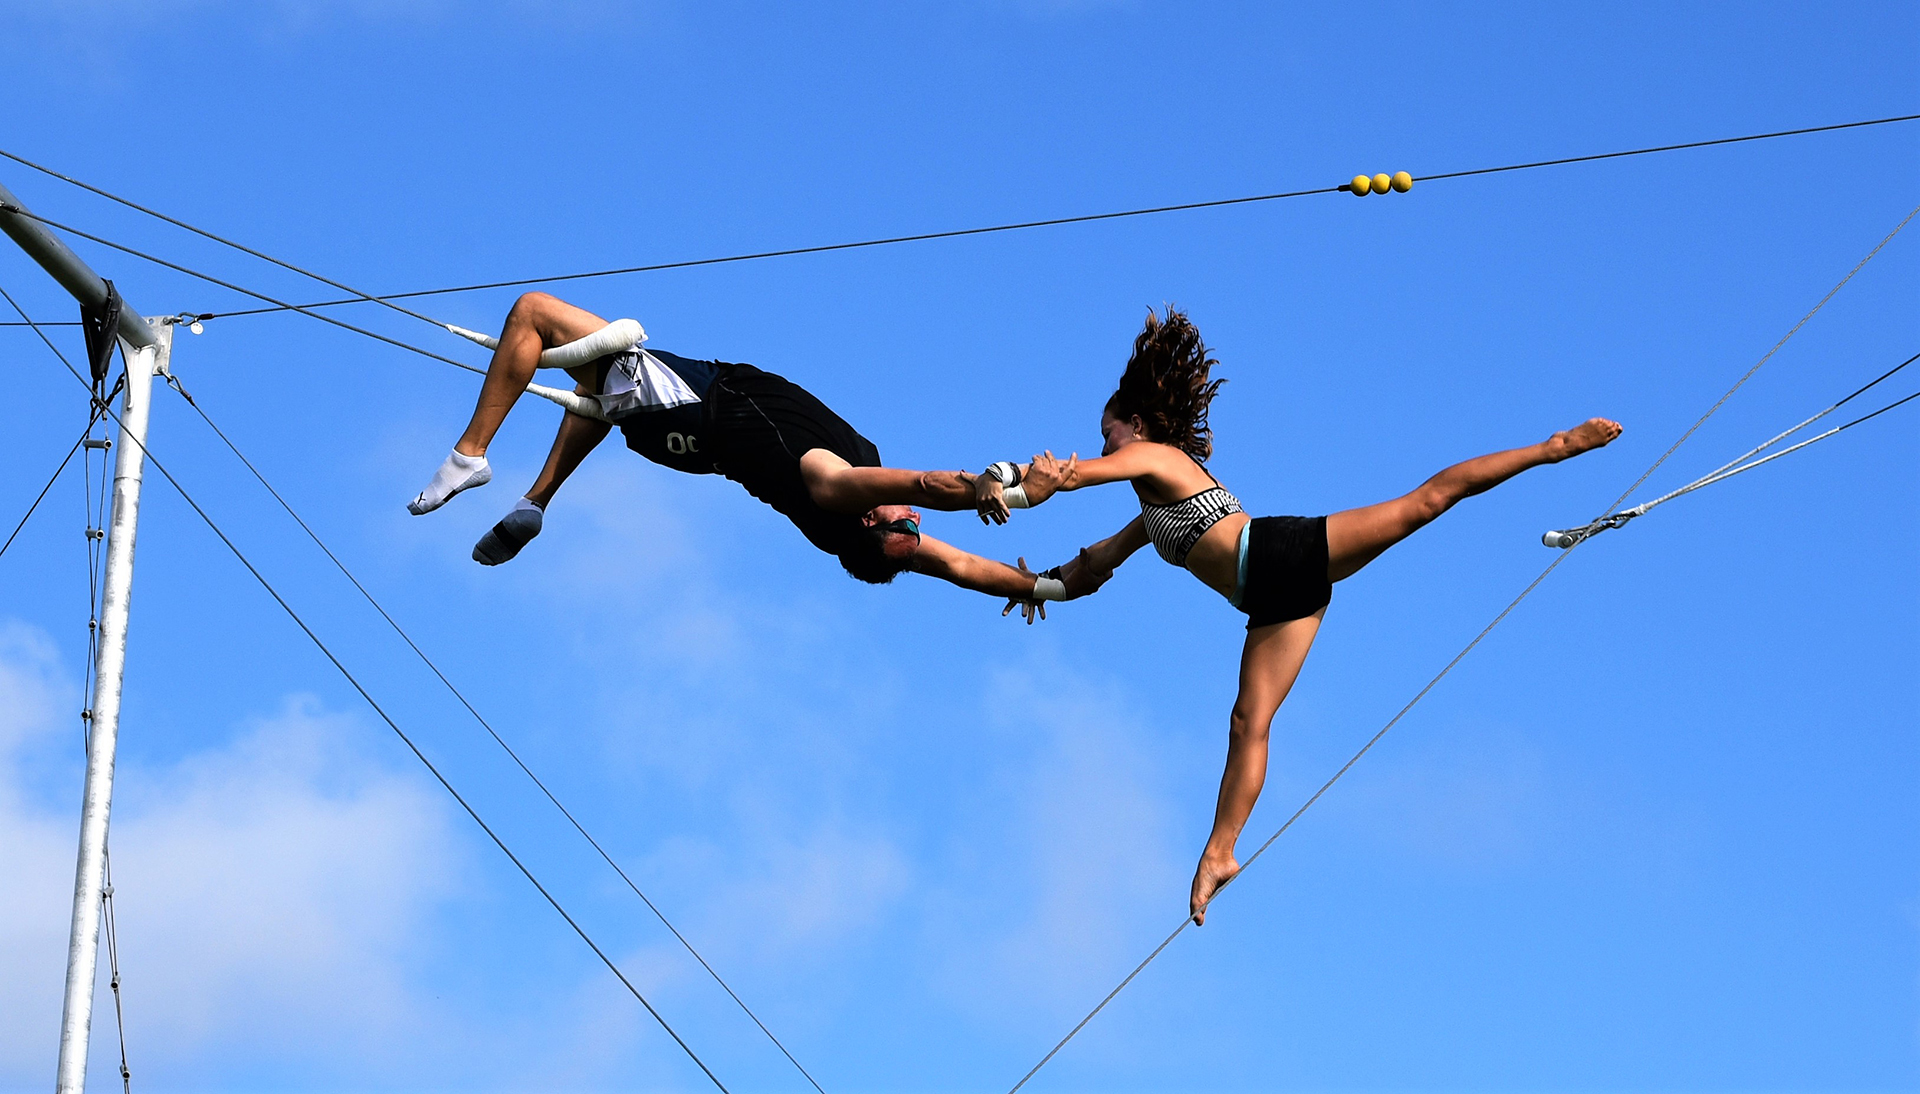 The Parable of the Trapeze & Transitional Phases